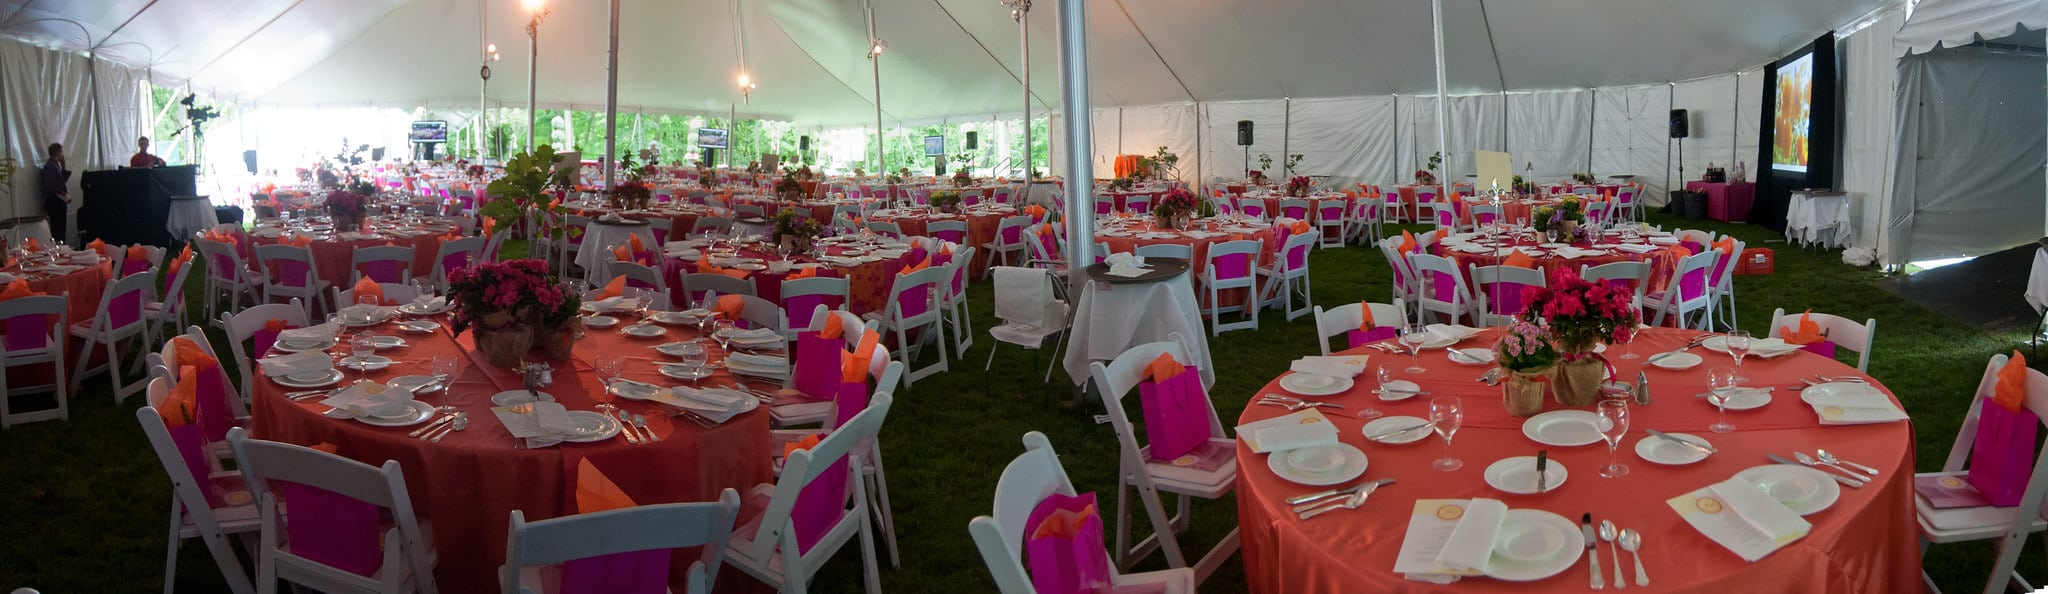 Event with set tables and chairs under a tent